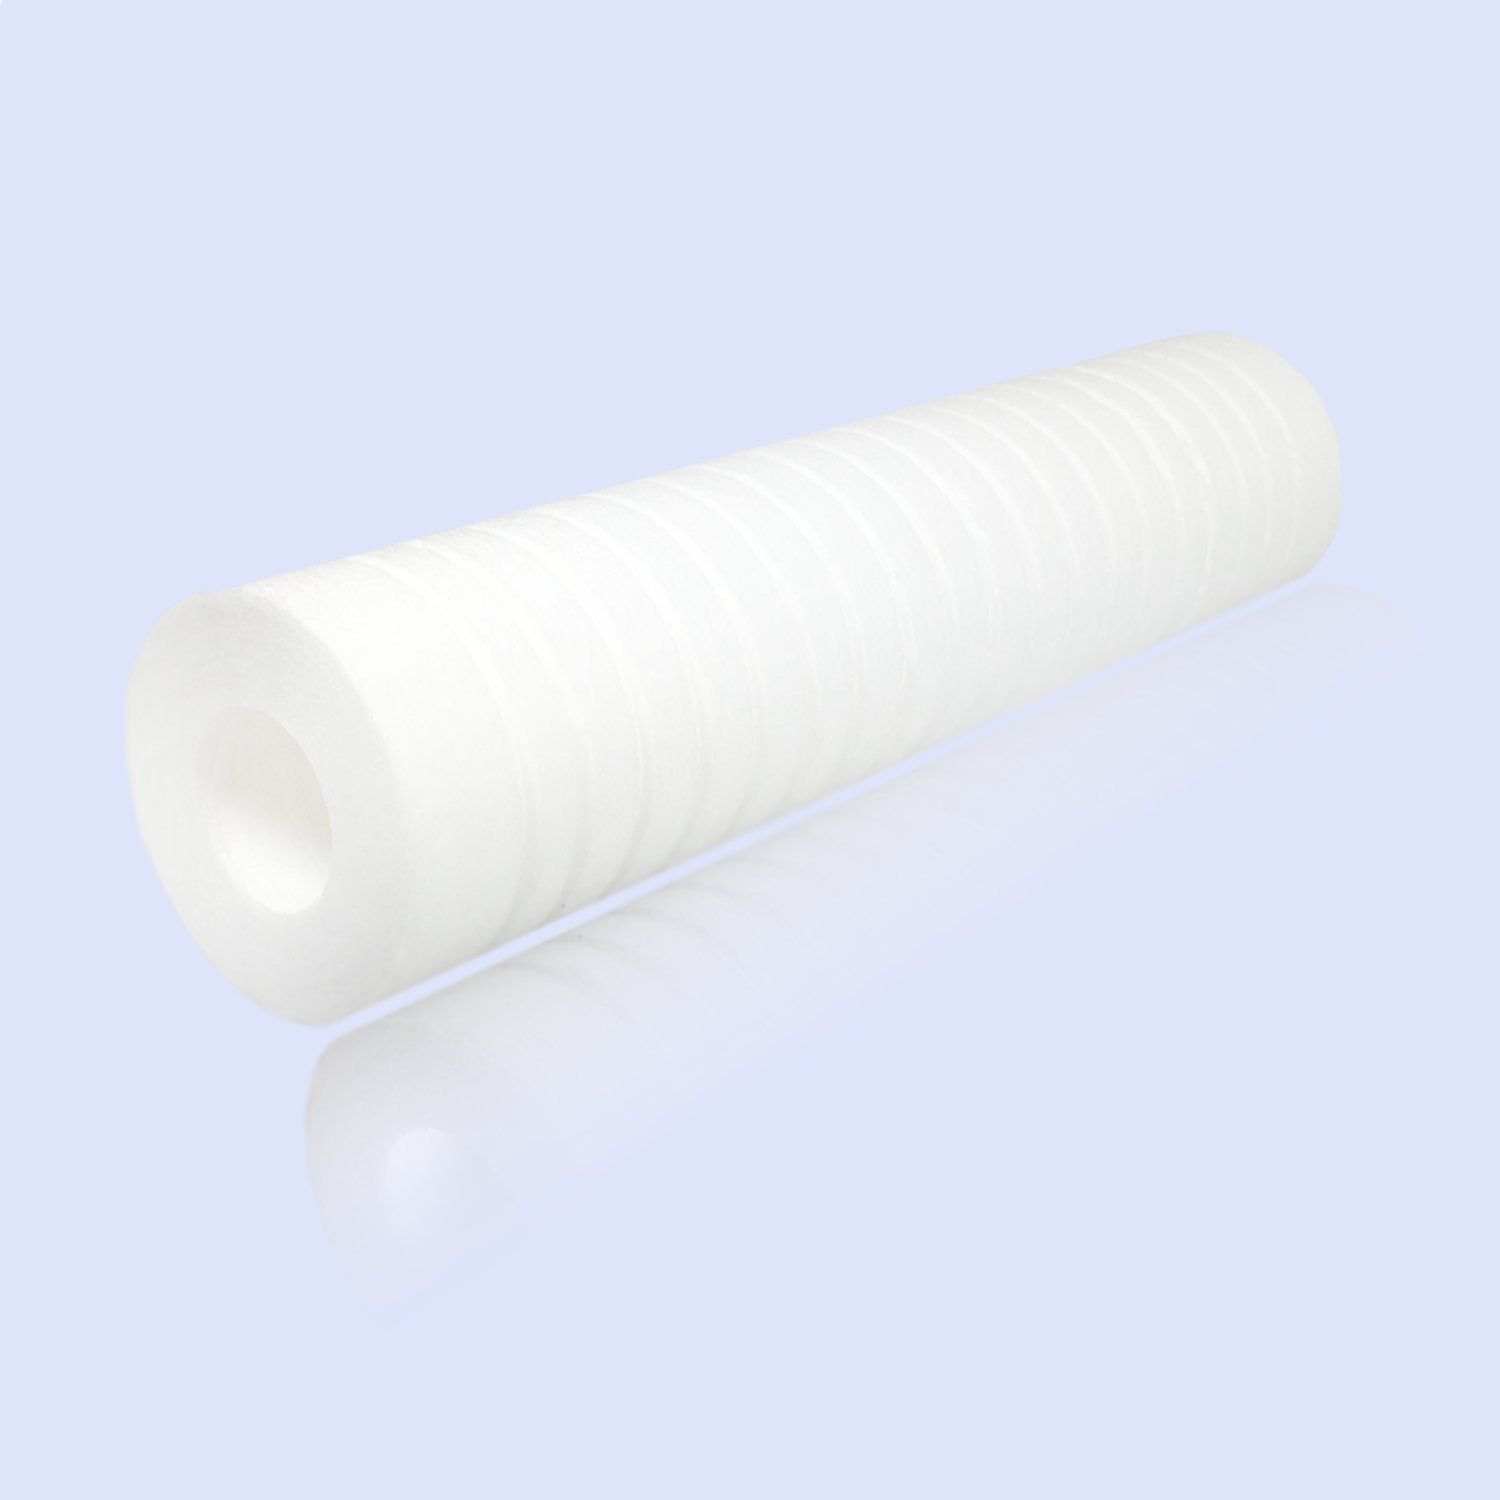 Aquaboon 1 Micron 10 X 2 5 Grooved Sediment Water Filter Replacement Cartridge For Any 10 Inch Ro Unit Whole House Sediment Filtrat Ro Unit Sediment The Unit